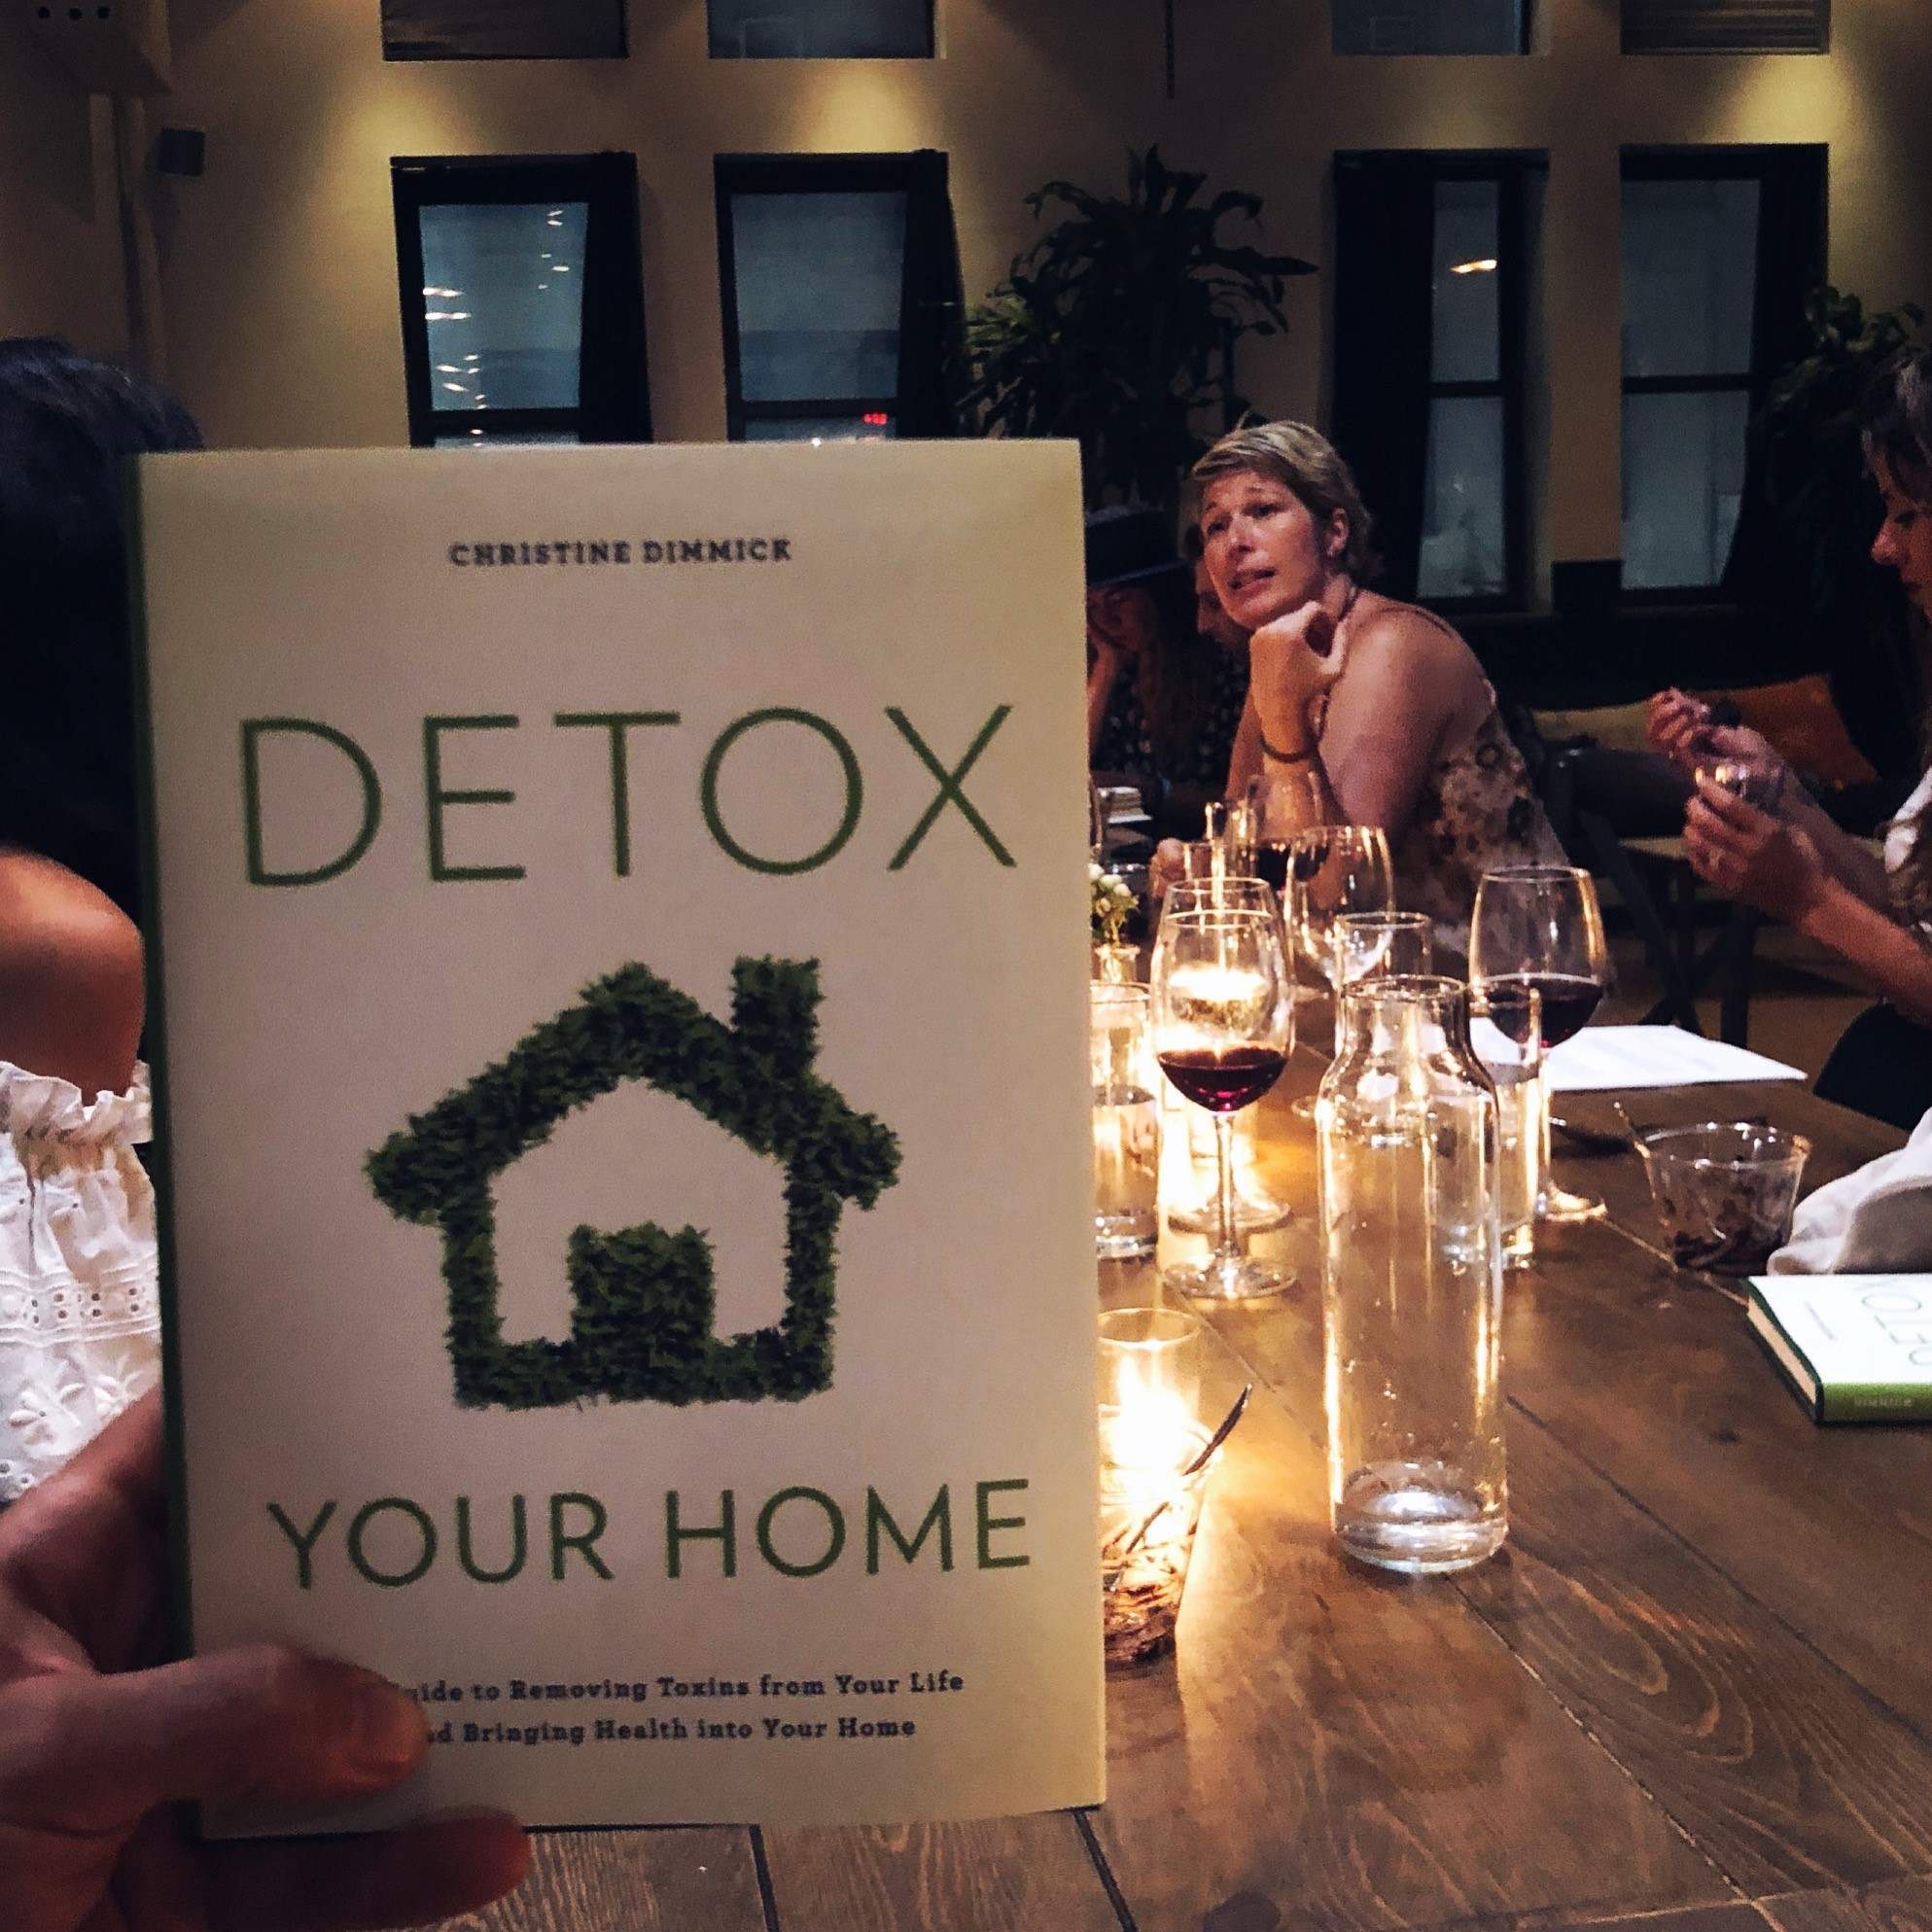 Detox Your Home discussion at Habitas NYC - hosted by Get the People